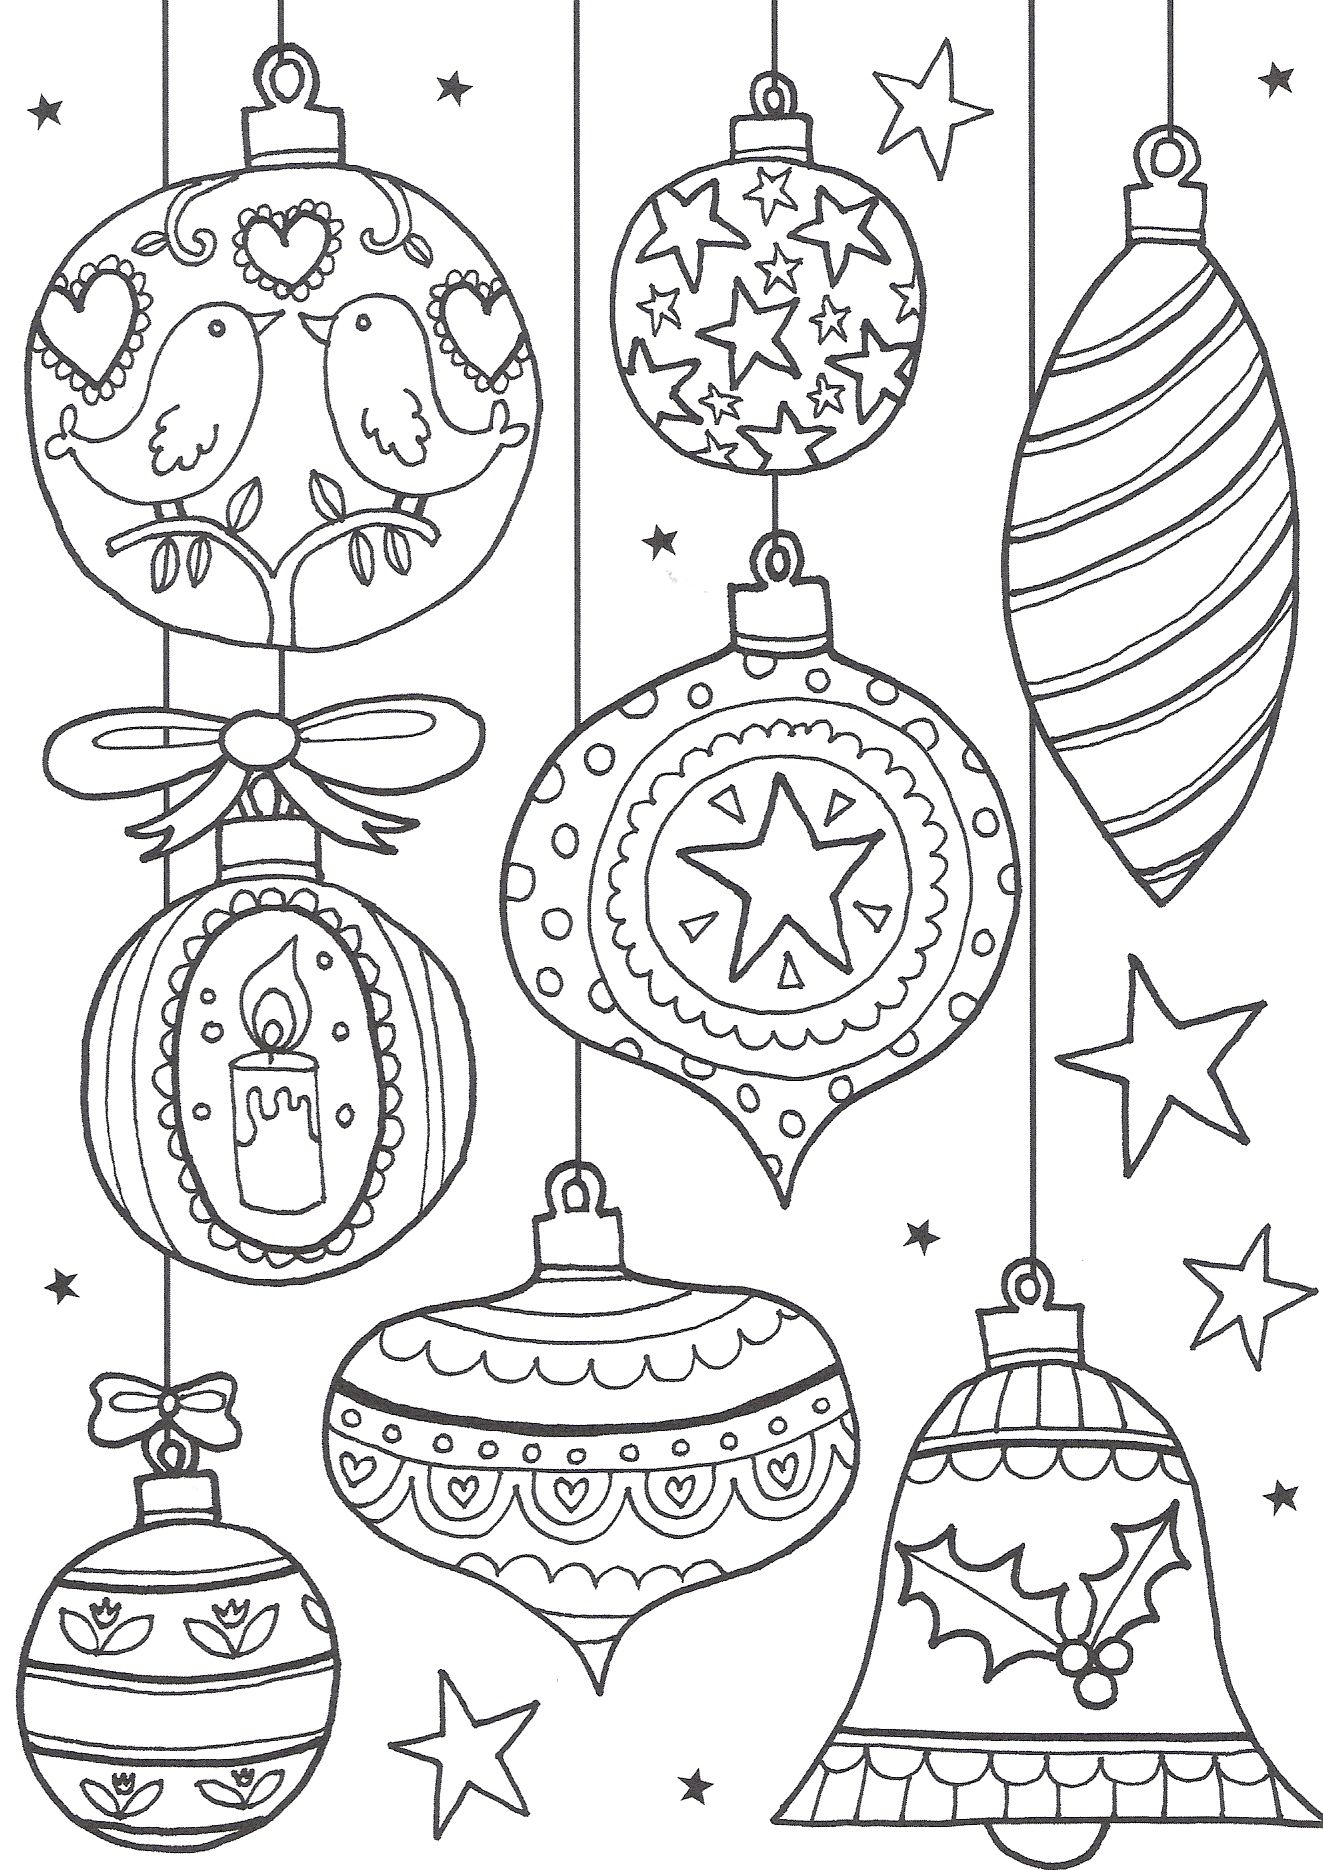 Christmas Coloring Pages - Ornaments